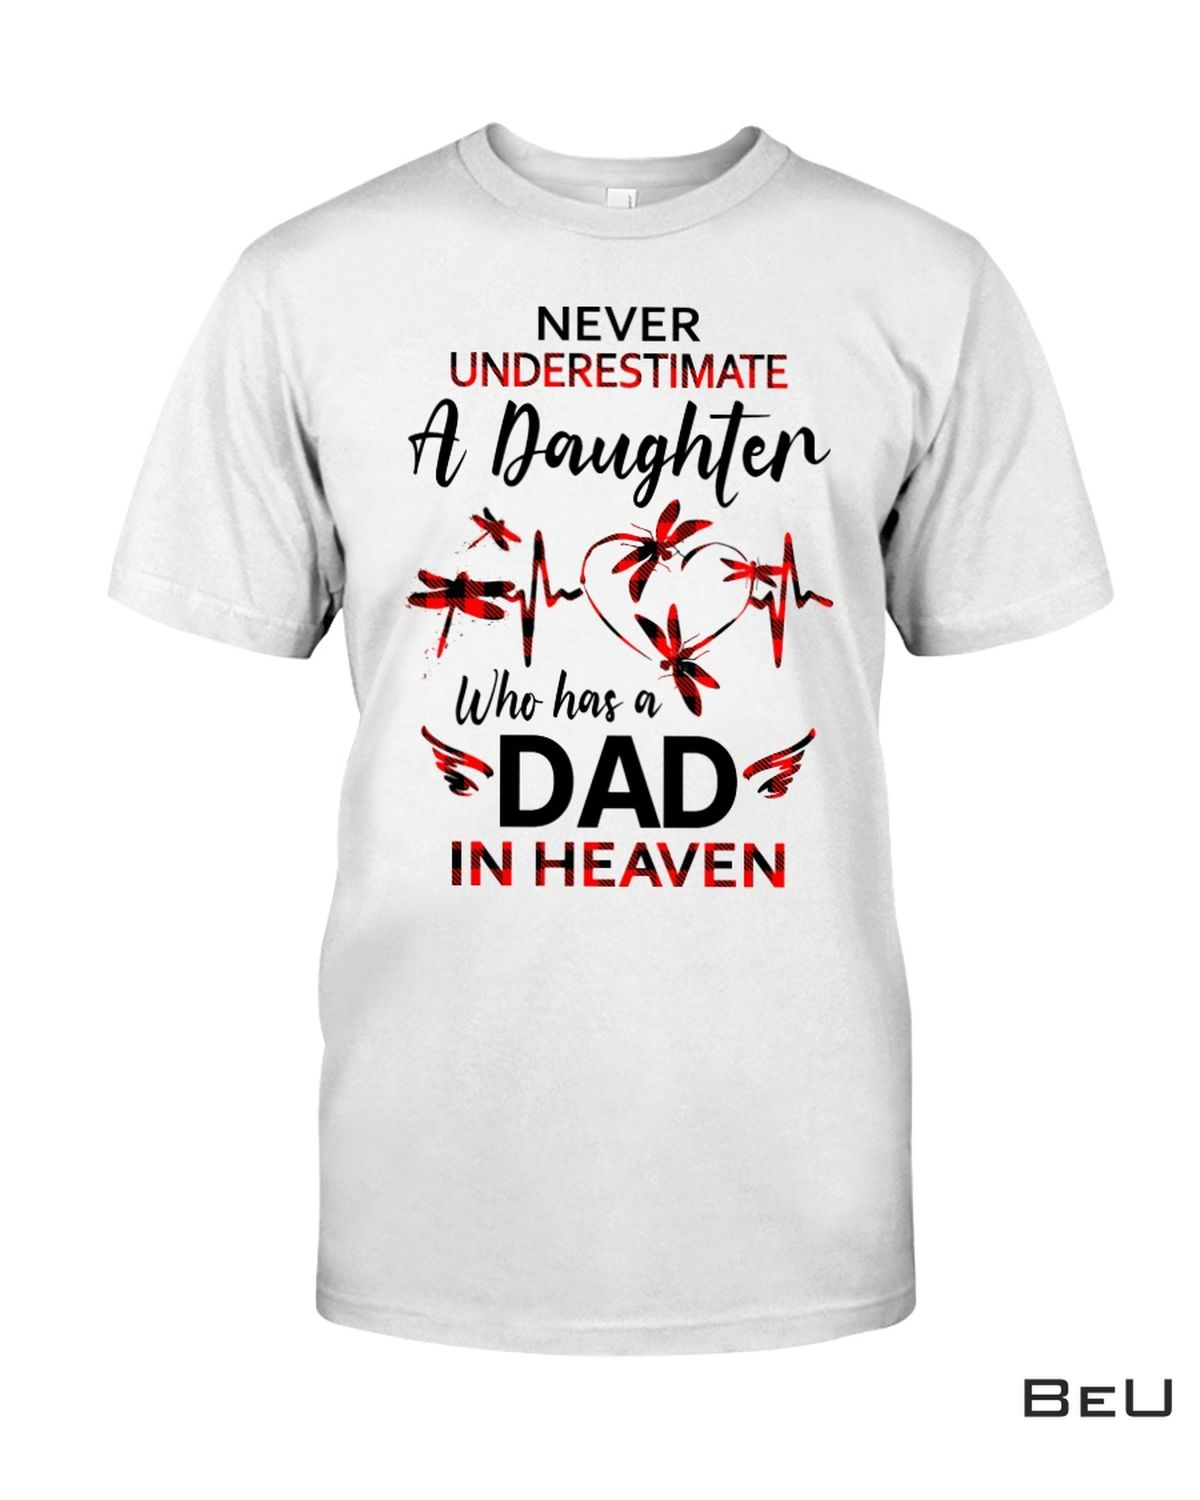 Never Underestimate A Daughter Who Has A Dad In Heaven Shirt, hoodie, tank top